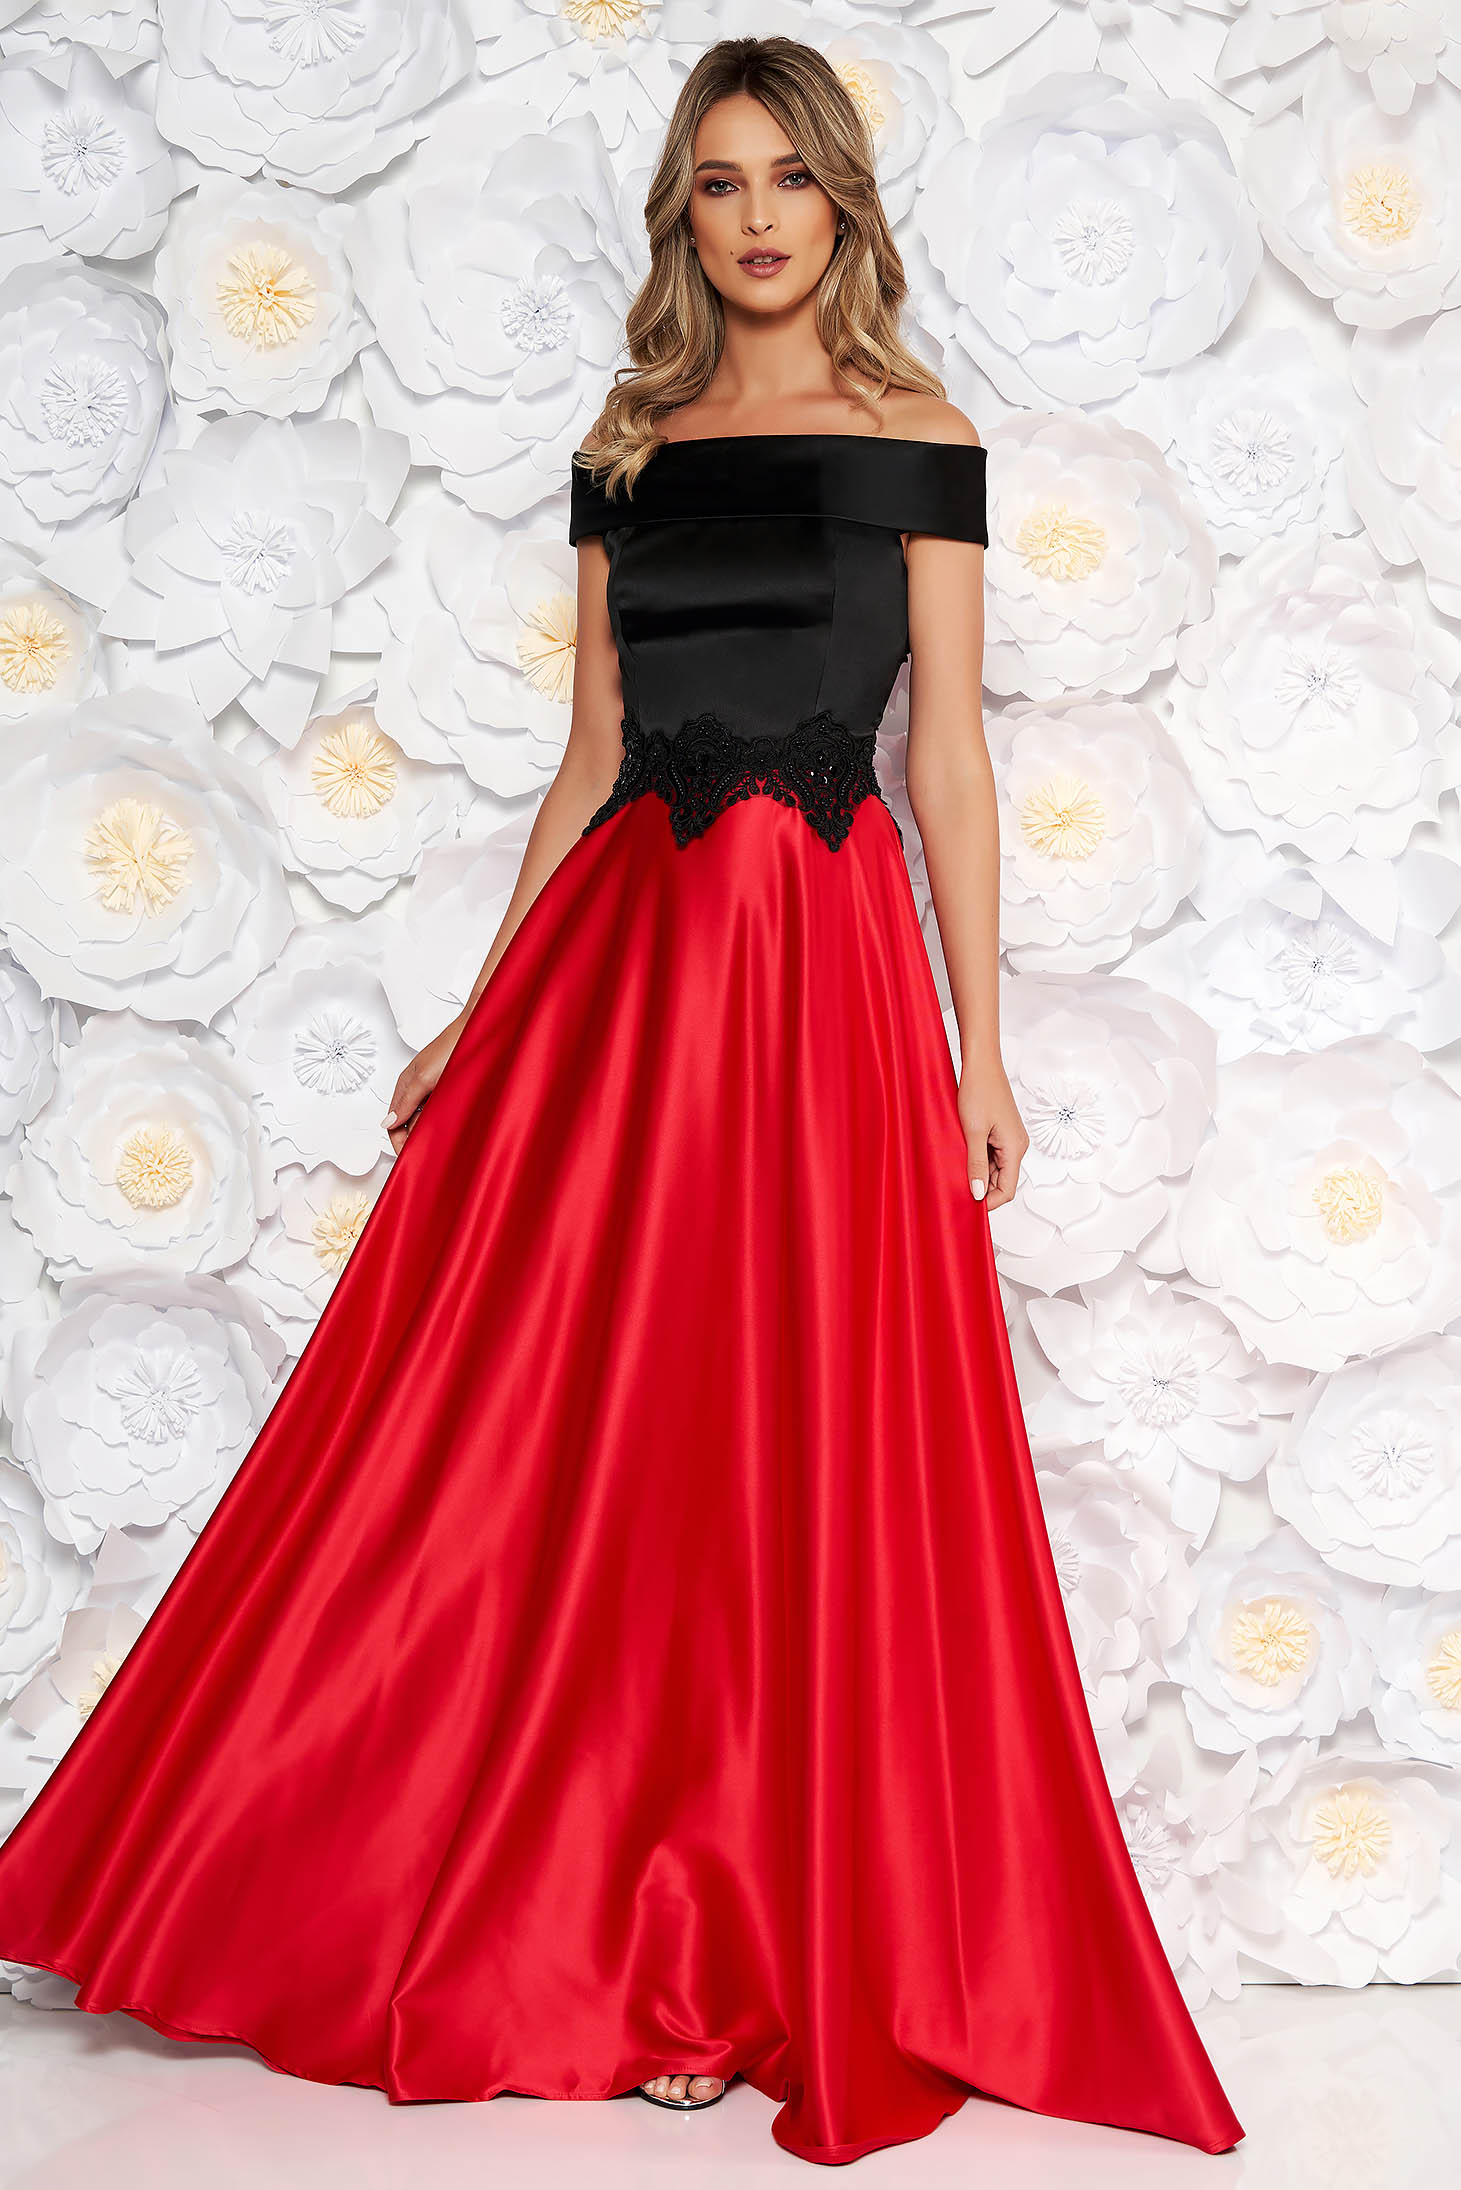 Red occasional cloche dress from satin fabric texture off shoulder handmade emroidered details